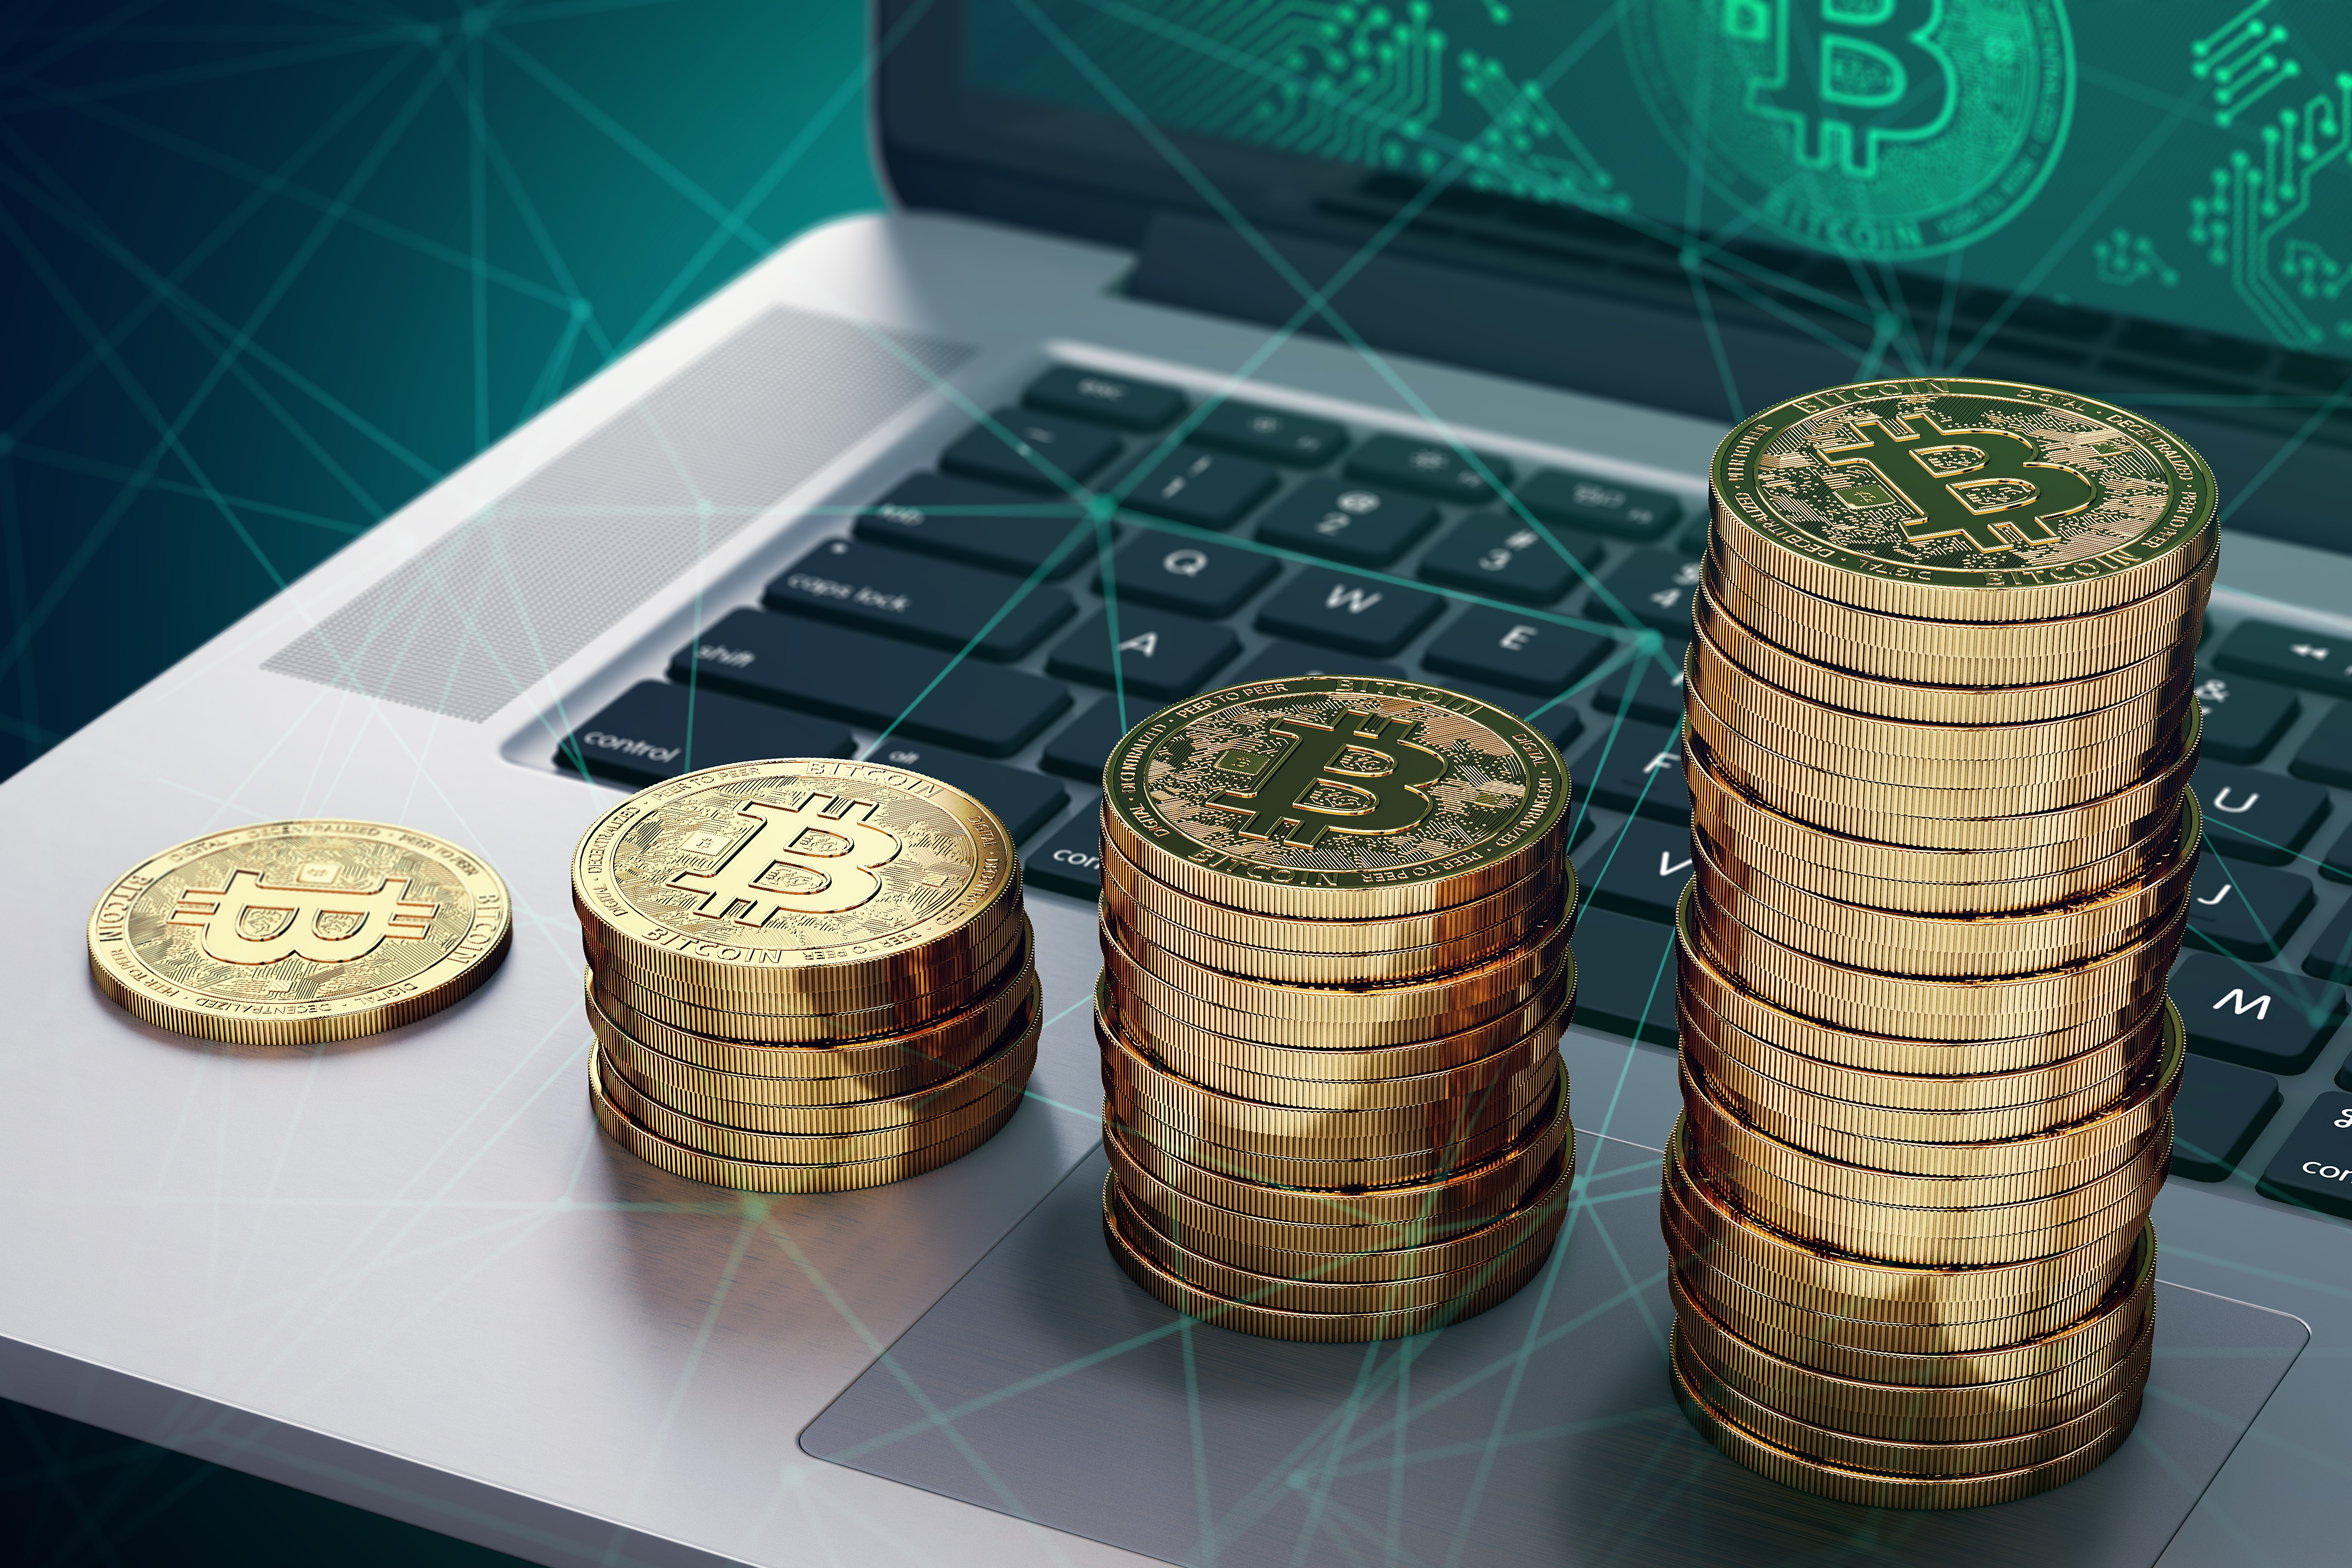 bitcoin stacking up on a laptop